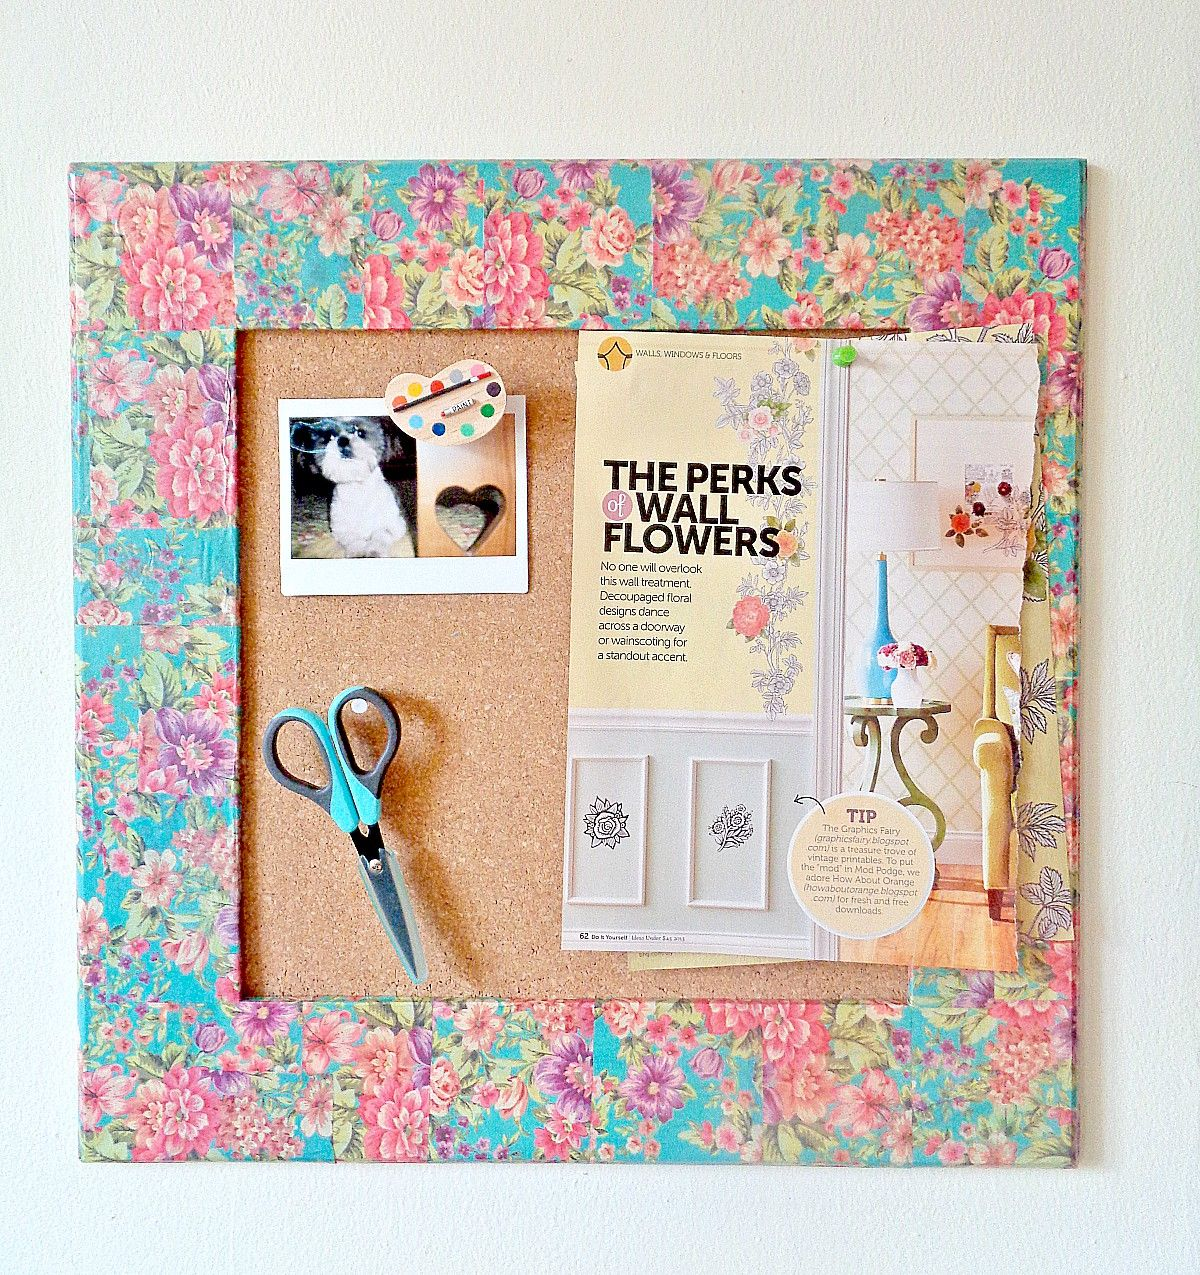 15 cool little projects you can do with cork - 15 Cool Little Projects You Can Do With Cork